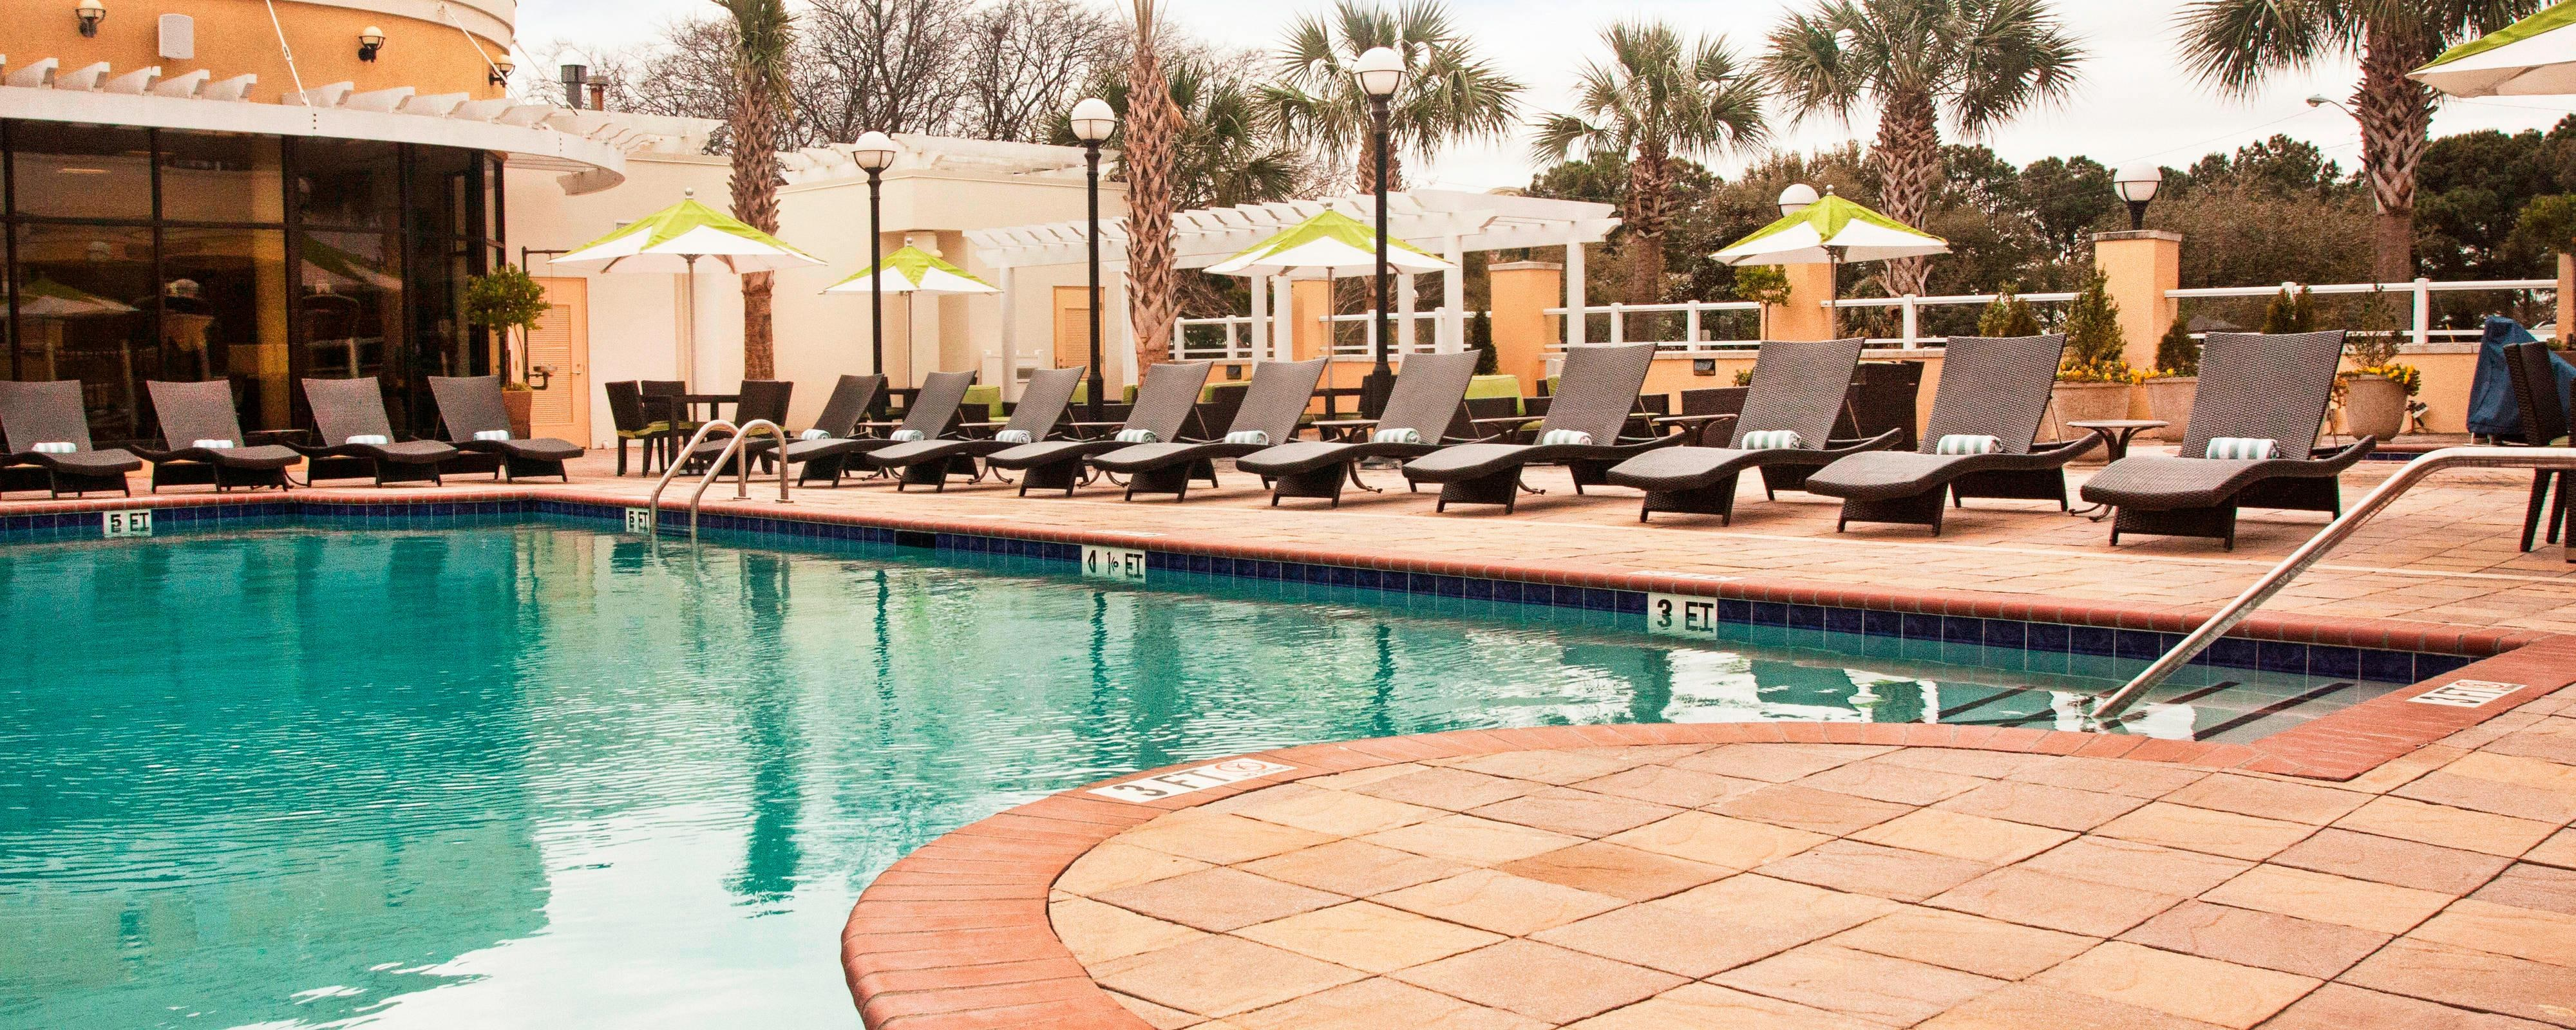 Hotelpool und Spa in Charleston